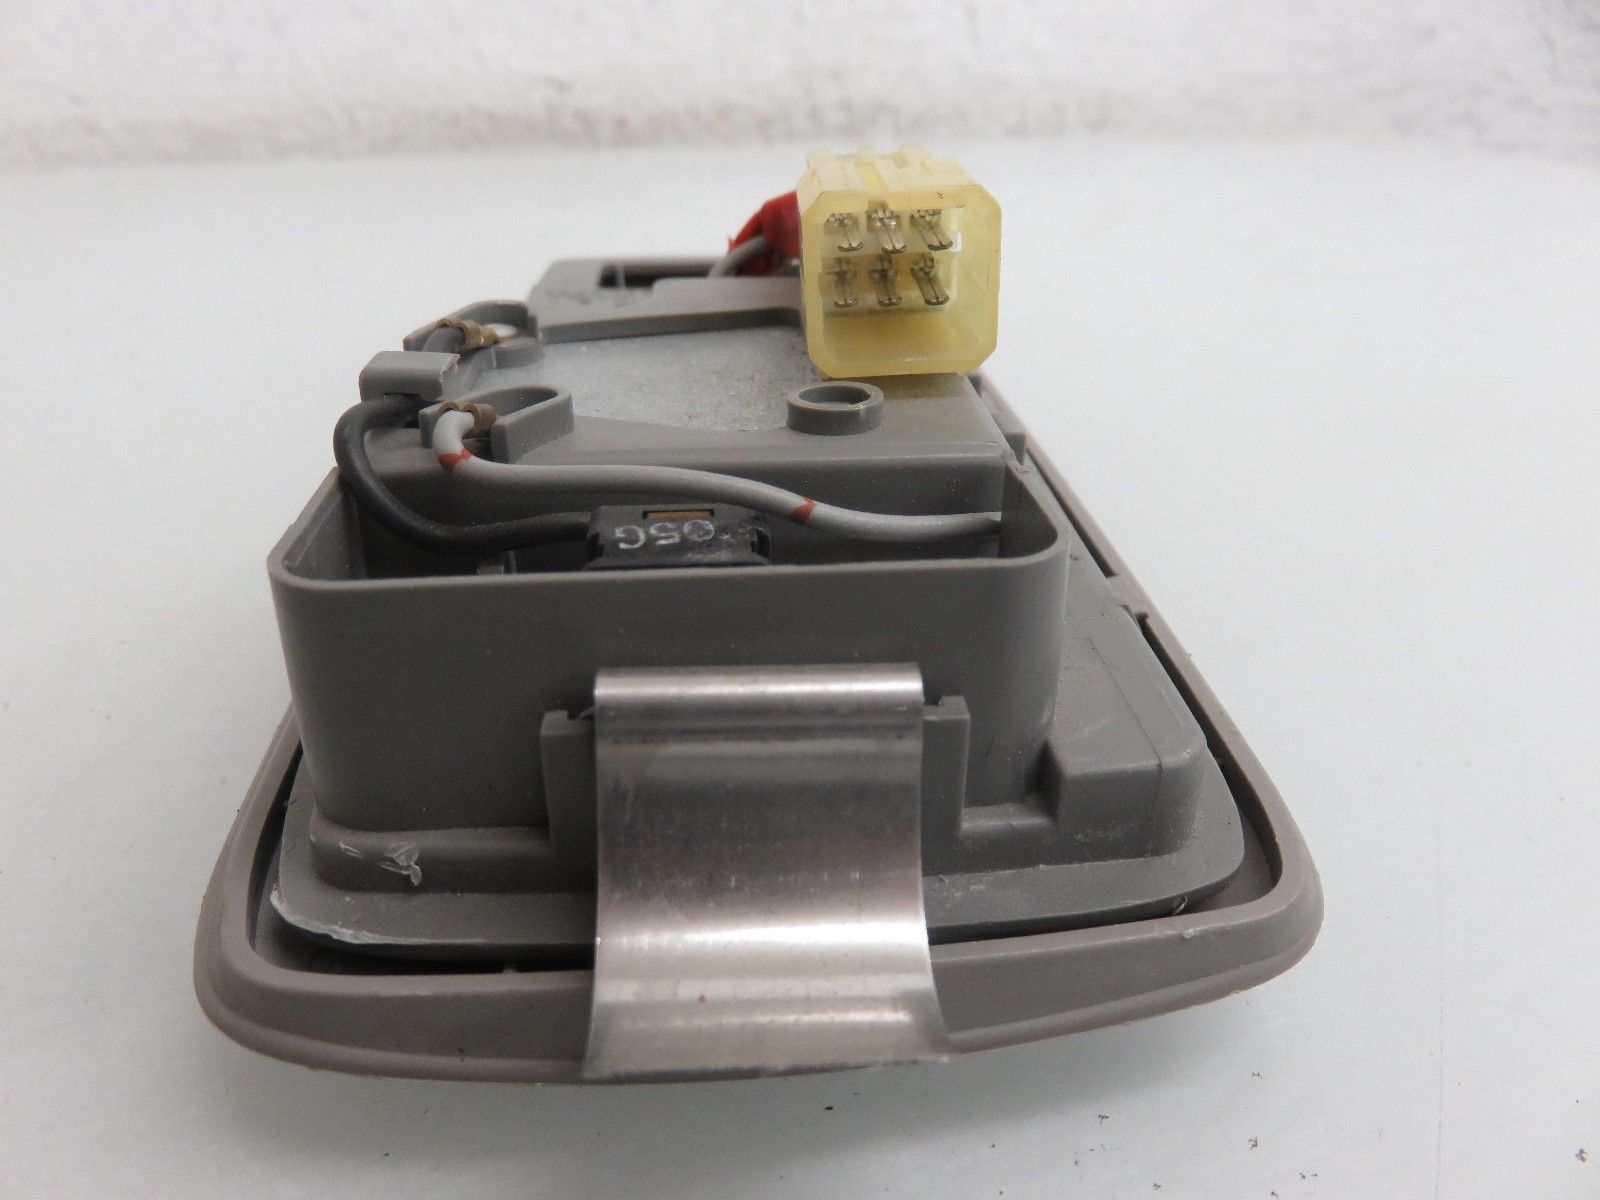 92-96 TOYOTA CAMRY SUNROOF CONTROL SWITCH WITH DOME LIGHT OEM